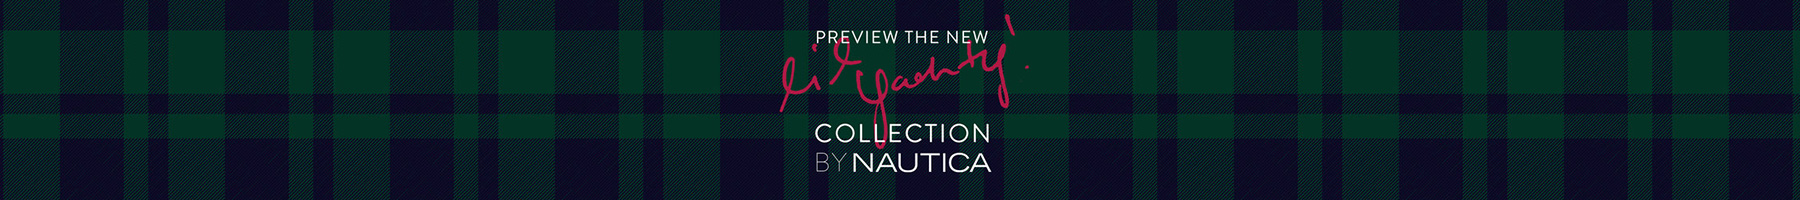 DrJays.com - Nautica - Lil Yachty Collection